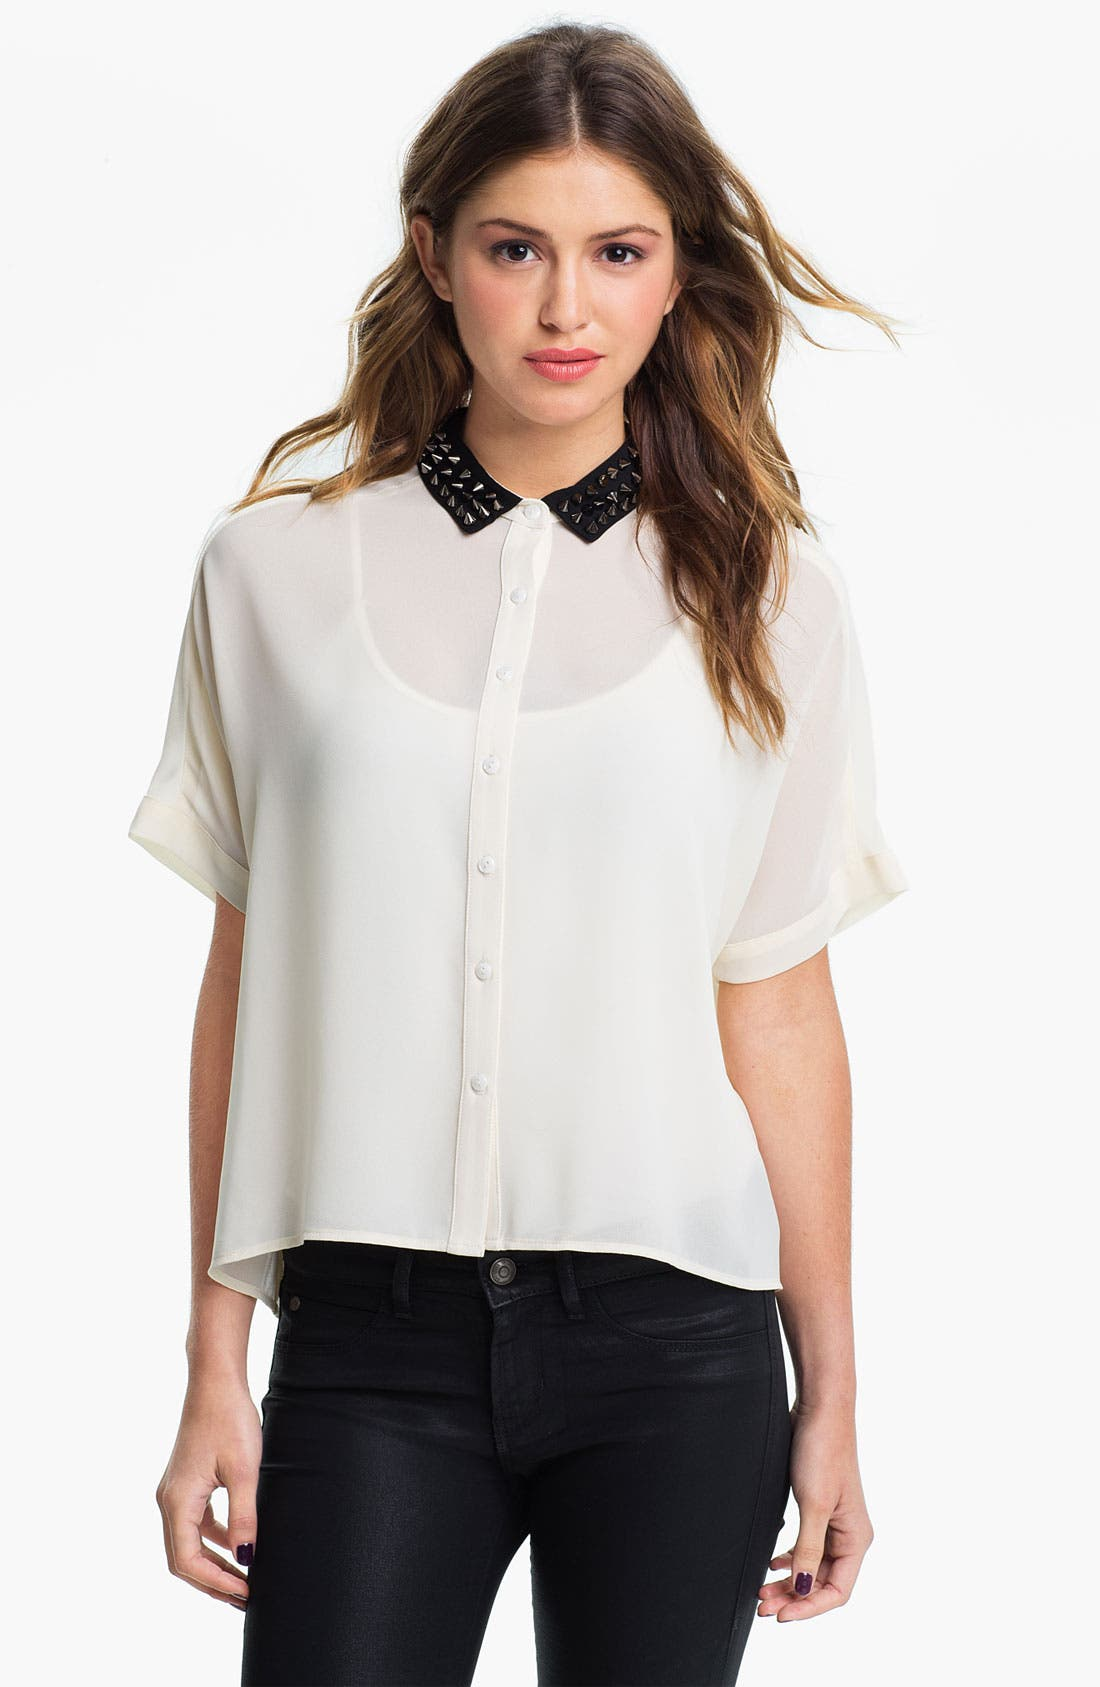 Alternate Image 1 Selected - Elodie Spike Stud Collar Shirt (Juniors)